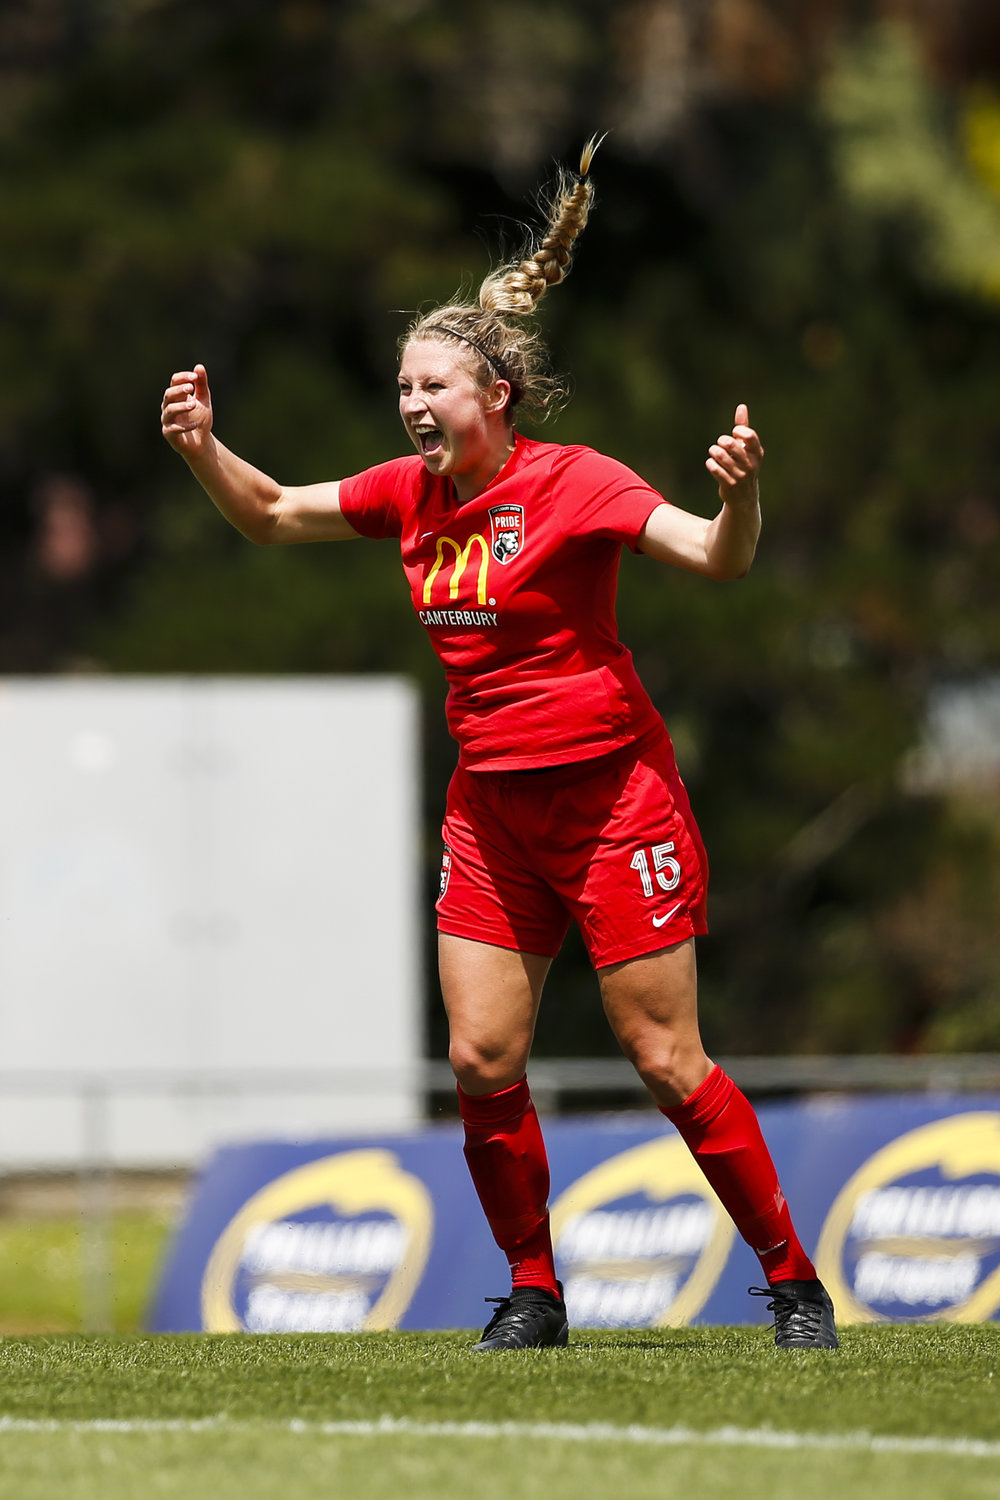 Monique Barker of Canterbury scores the winning goal against Northern at the National Women's League Final. 16 December 2018. Trusts Arena, Auckland, New Zealand. Copyright photo: Alisha Lovrich / www.photosport.nz